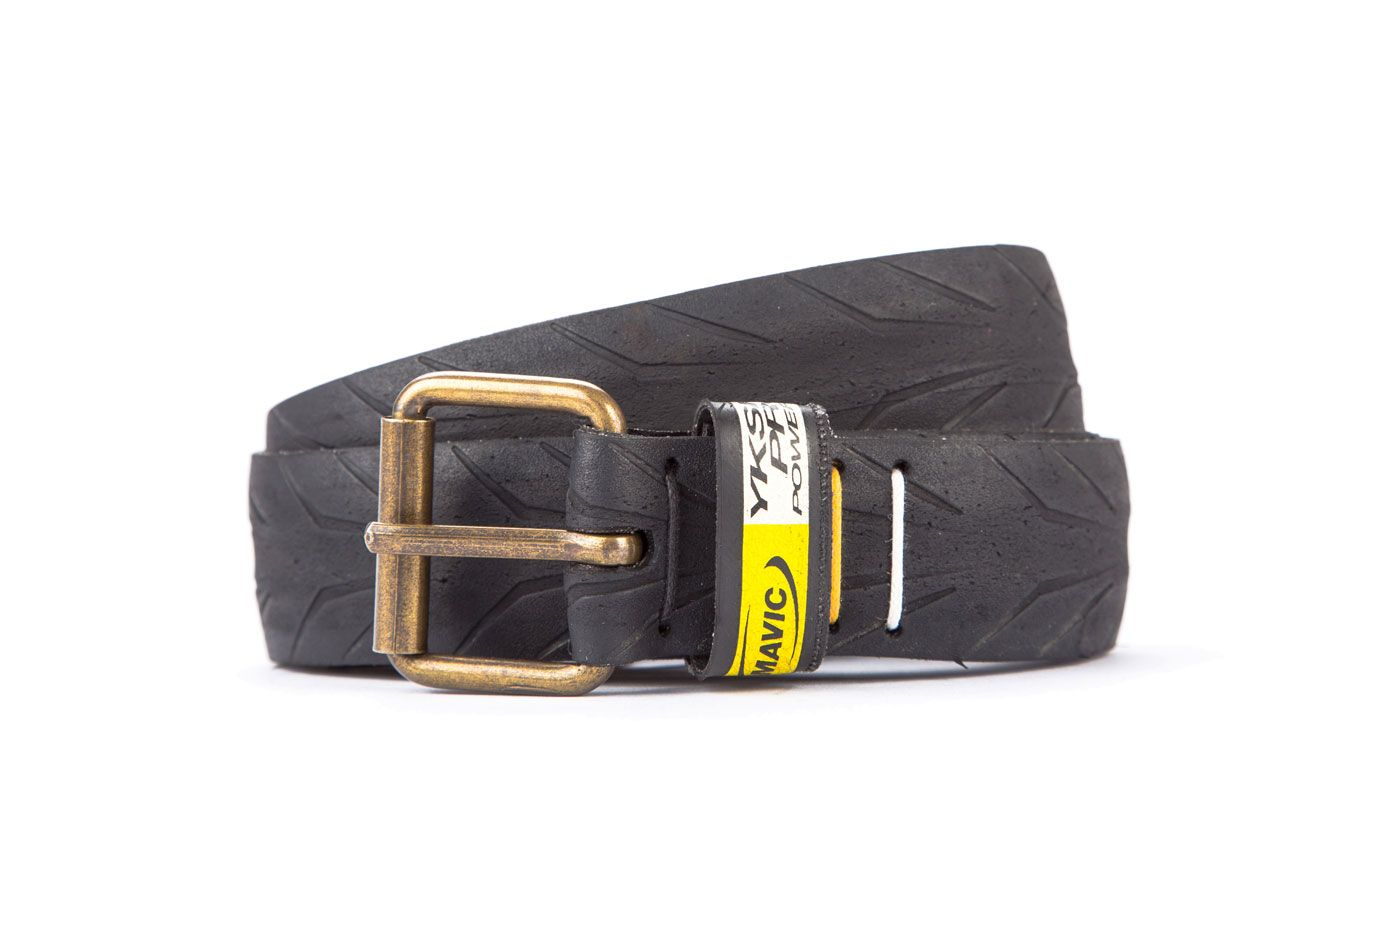 #2234 - Black belt from a spare race bicycle tyre, entirely handcrafted, iron branded and numbered. Belt loop obtained from Mavic tyre side. Strap folded up and stitched up with cotton colored strings.